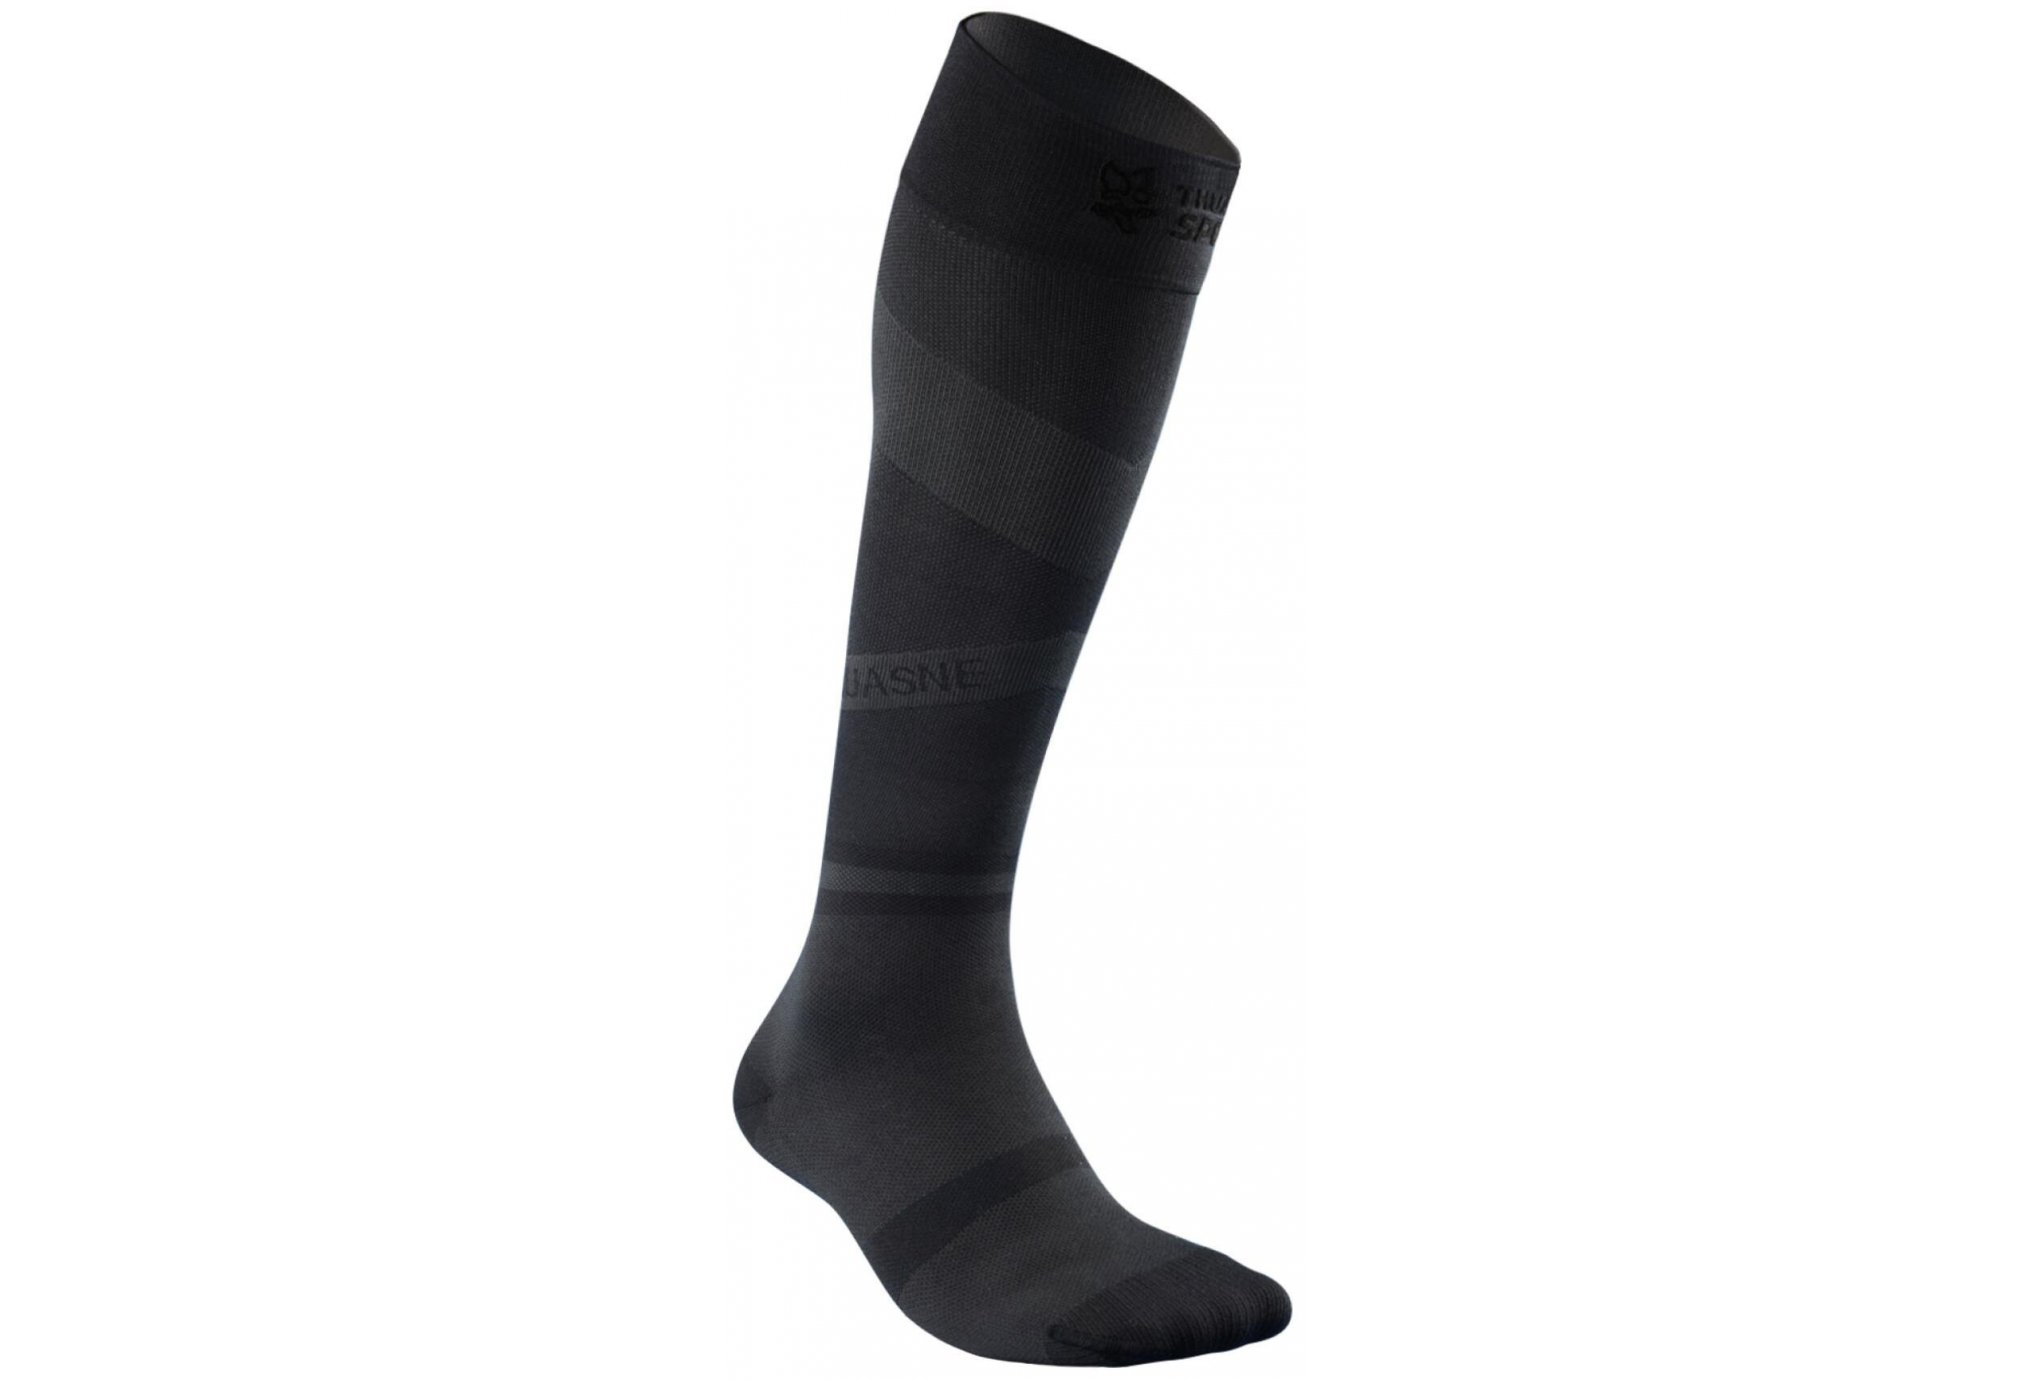 Thuasne Up Recovery Normal Chaussettes